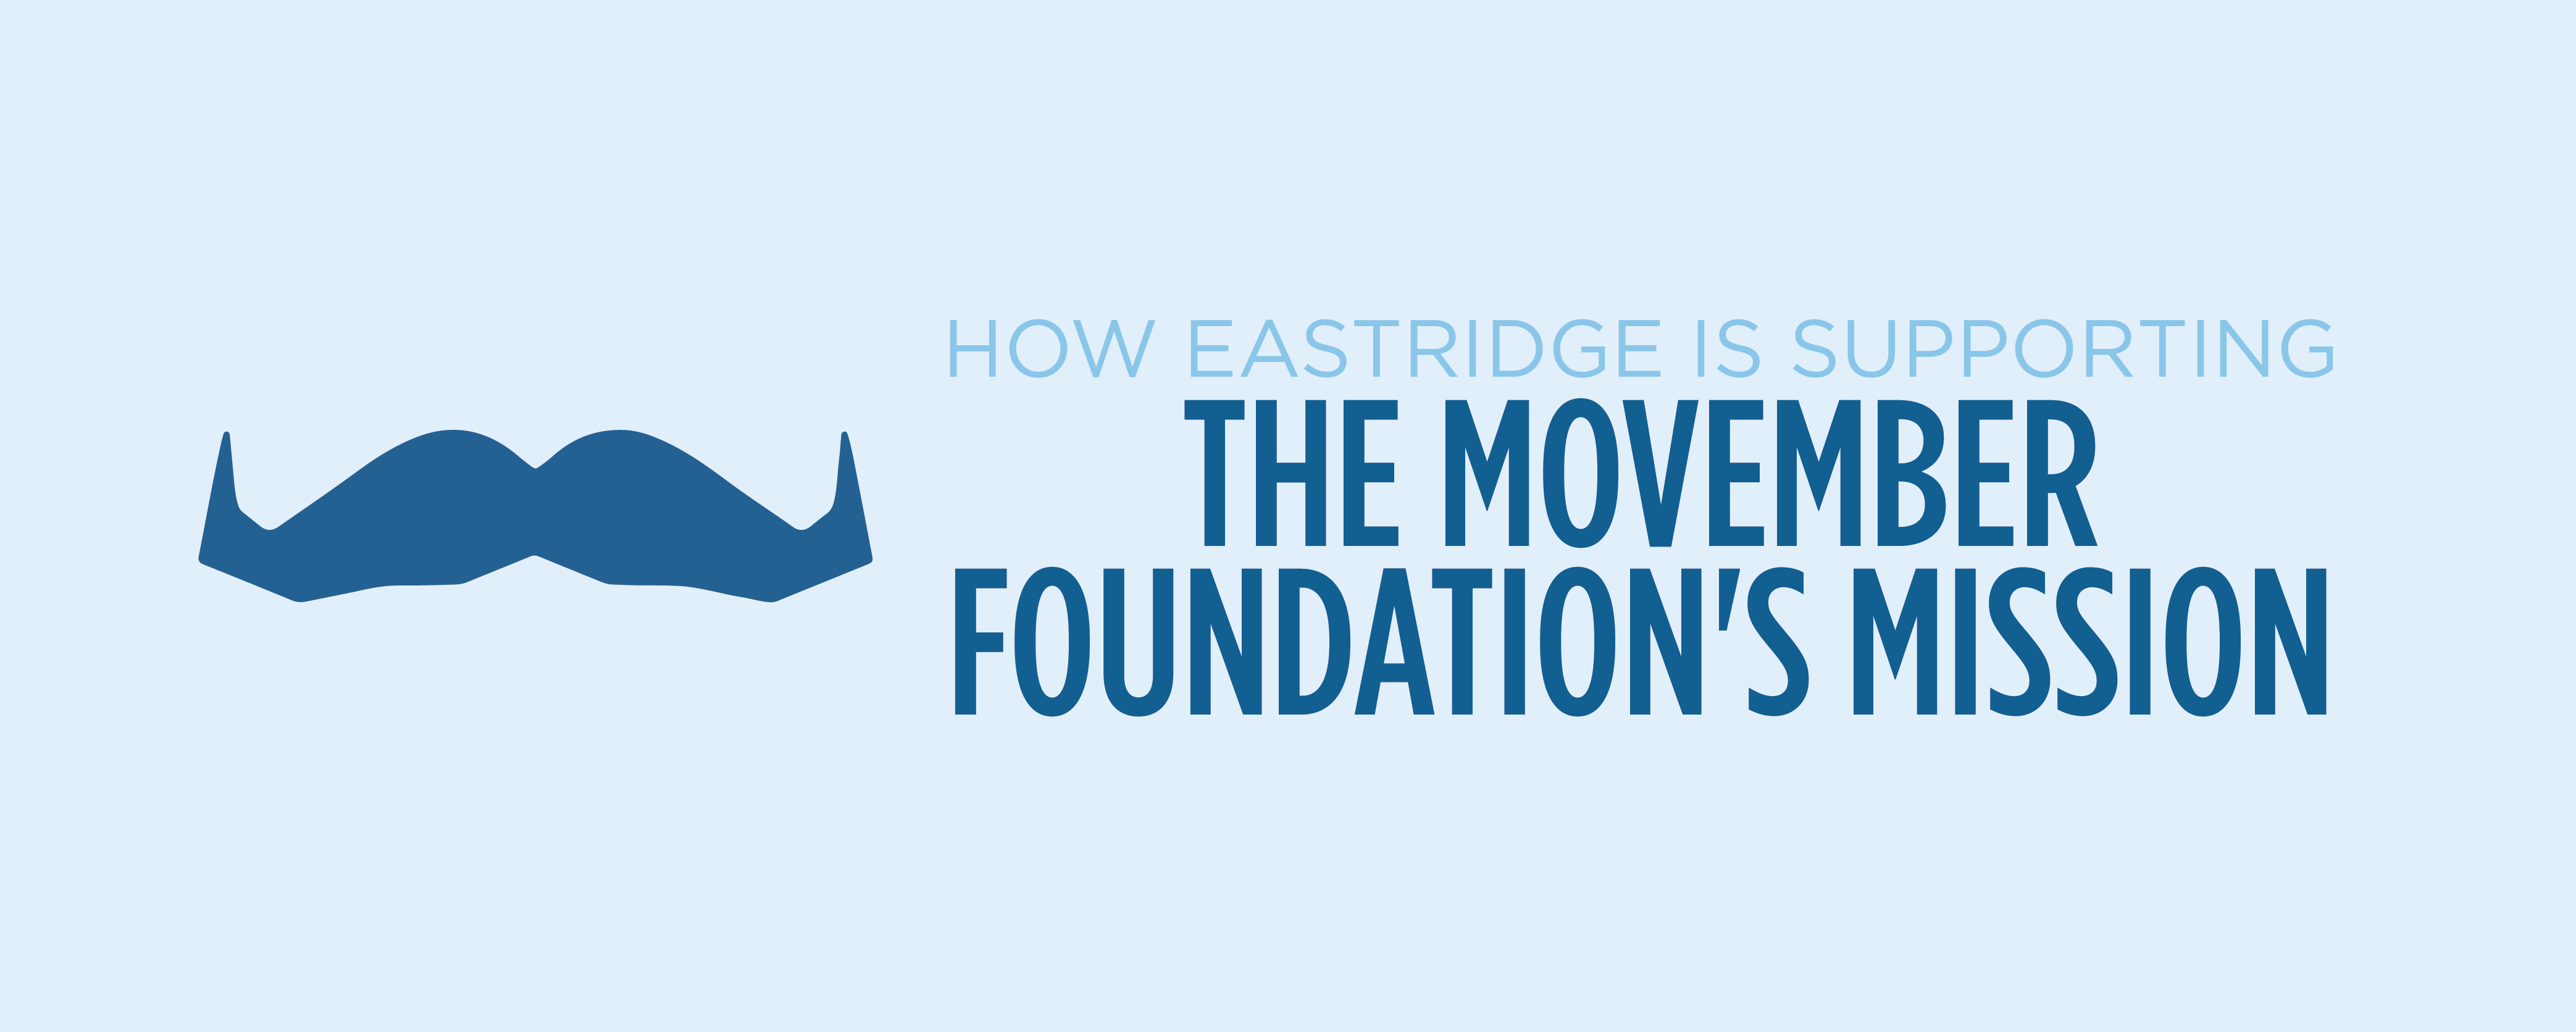 how eastridge is supporting the movember foundation's mission